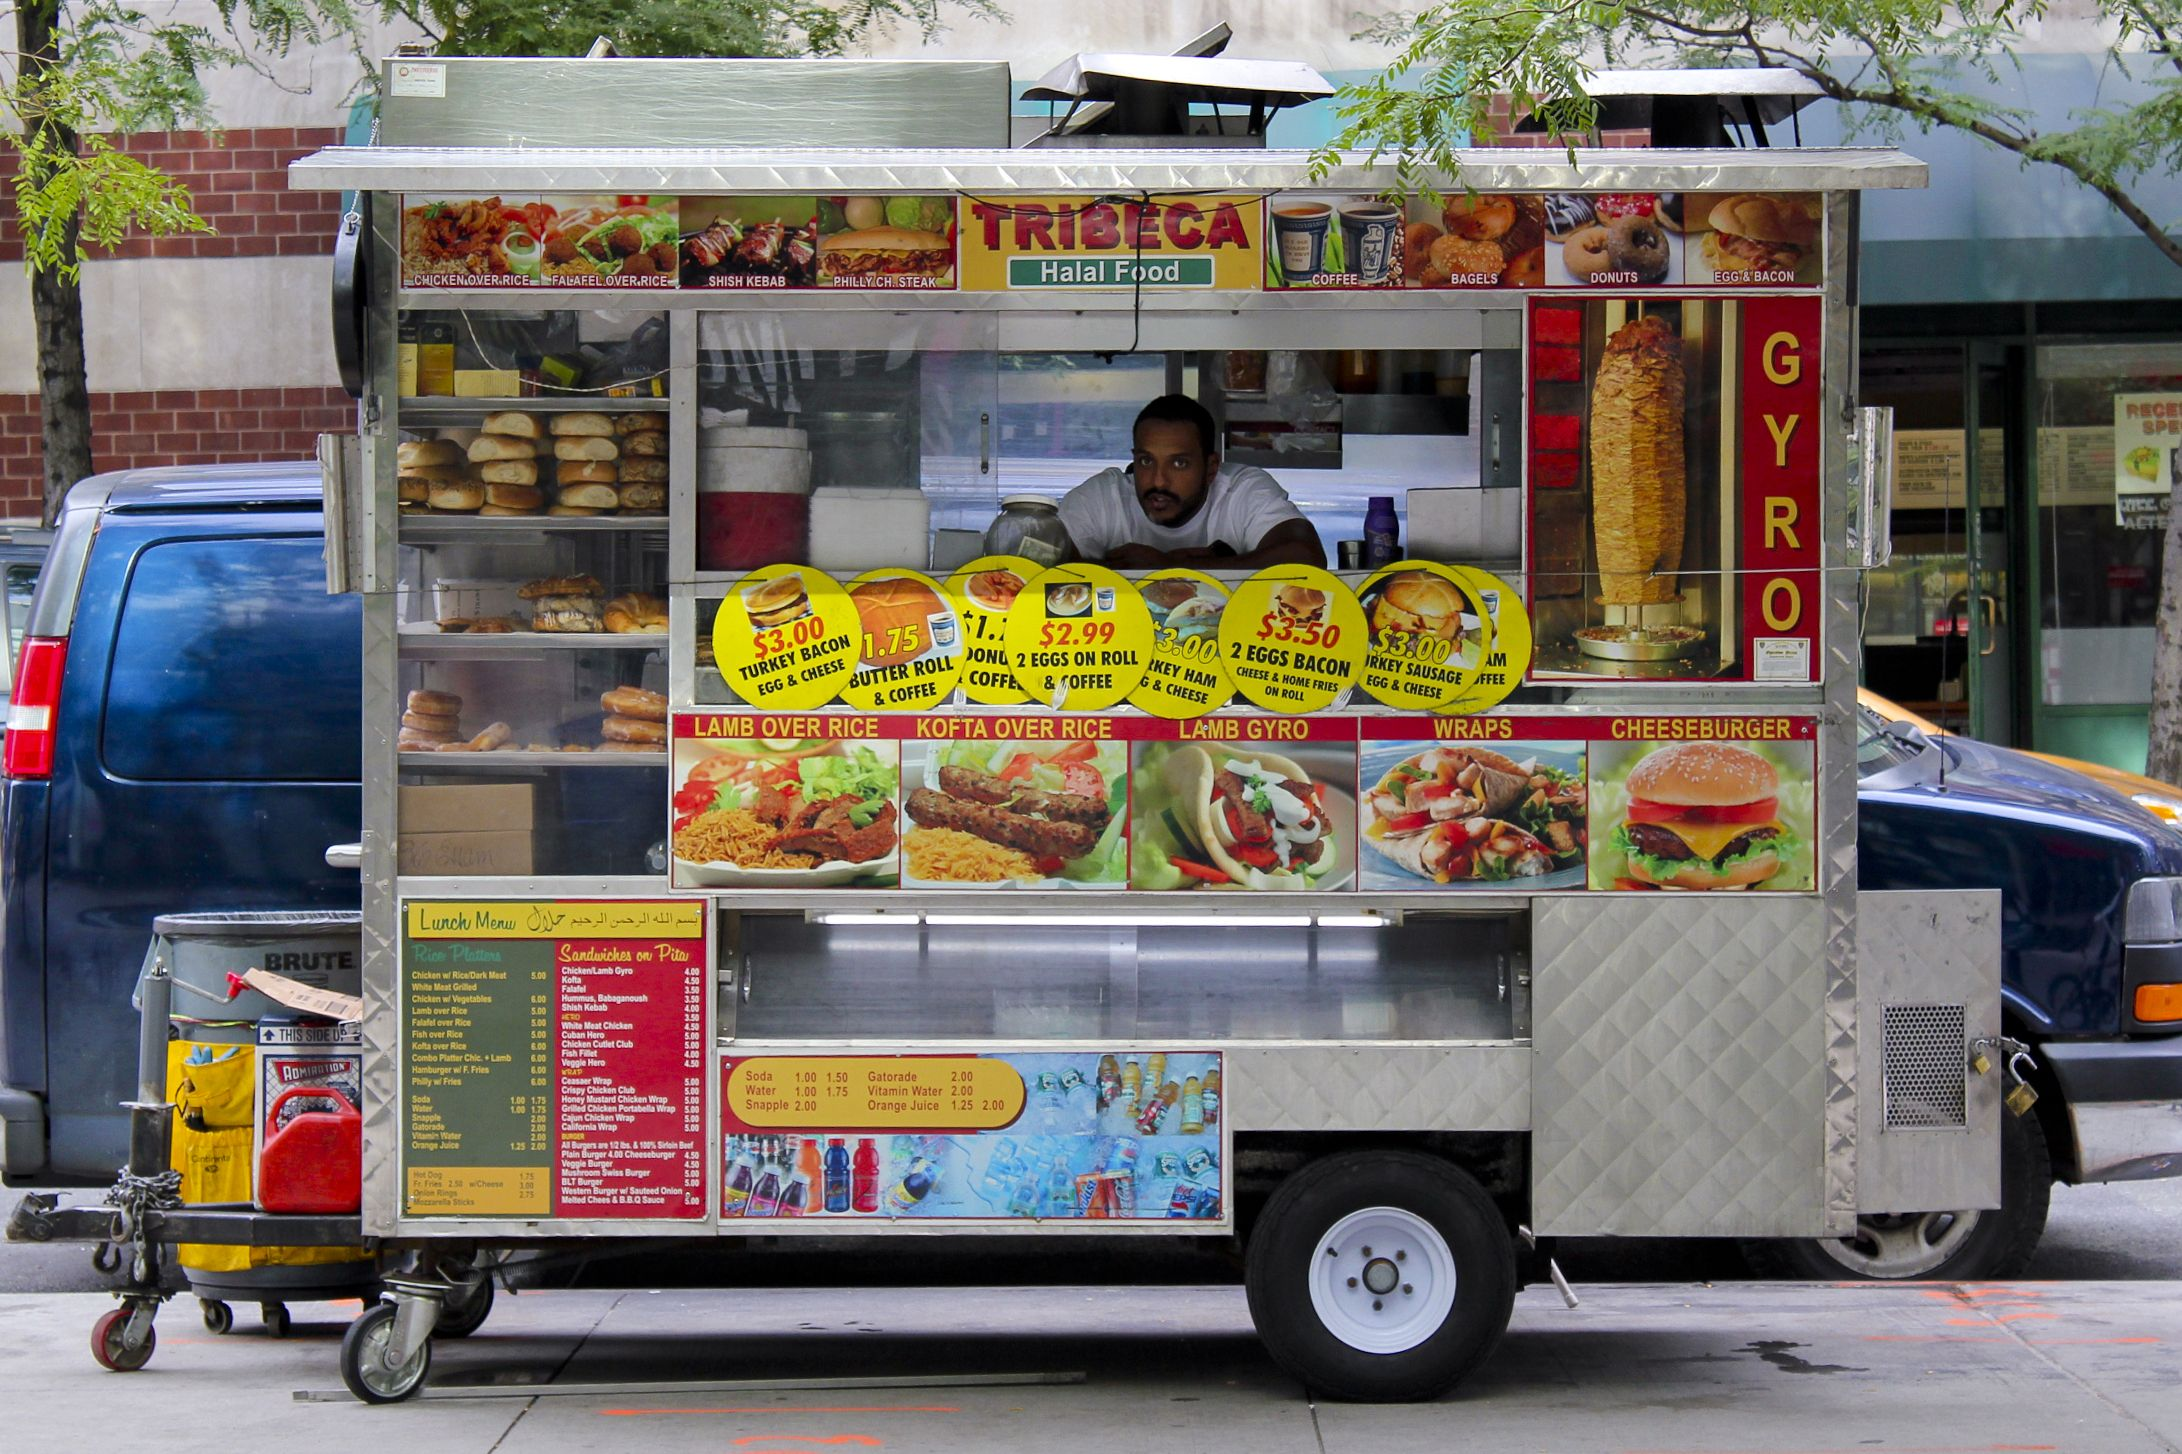 Cuisine Served From More Than 24 Food Trucks Will Be Featured July 27 In St Augustine Food Tru In 2020 Food Truck Halal Recipes Coffee Food Truck